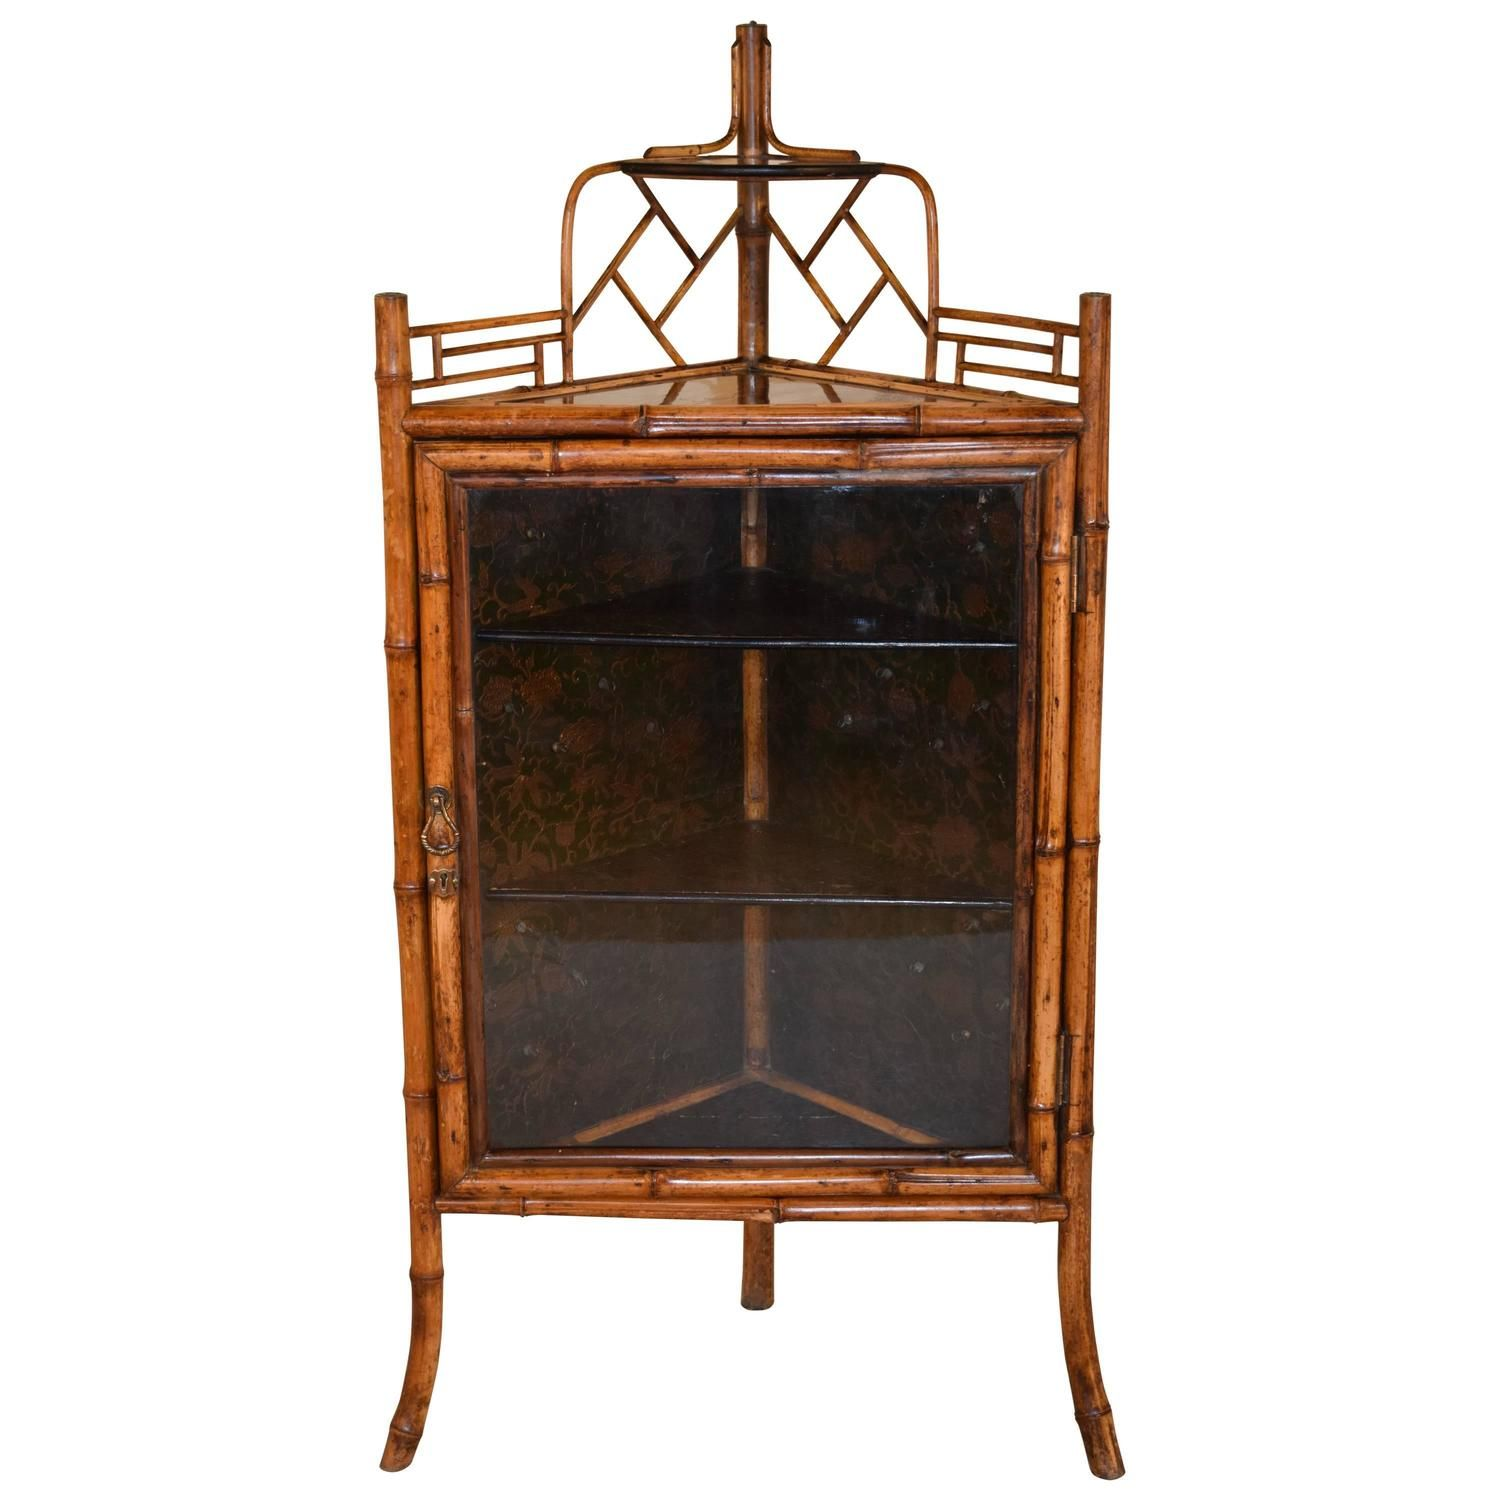 19th Century French Bamboo Corner Cabinet For Sale at 1stdibs